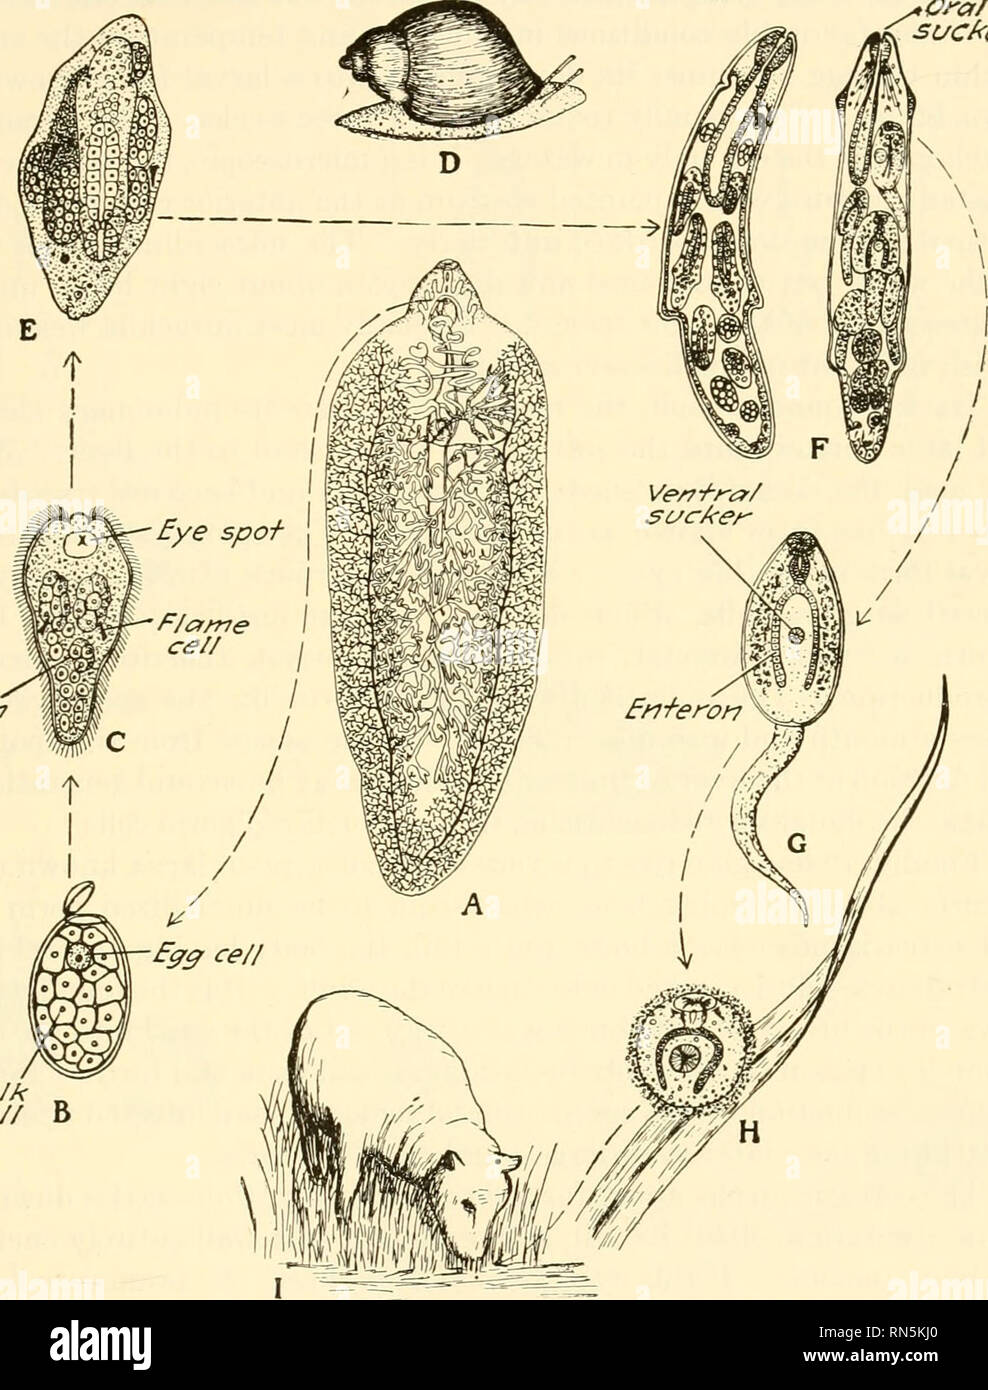 https://www alamy com/animal-biology-zoology-biology-parasitism-173-202-life-history-of-the-sheep-liver-flukethe-egg-cell-is-produced-in-the-ovary-of-the-fluke-and-is-passed-into-the-oviduct-where-it-is-fertilized-ora-cezs-yok-ltre-b-fig-85diagram-of-the-life-history-of-a-sheep-liver-fluke-a-the-adult-fluke-fasciola-hepatica-in-bile-duct-of-sheep-b-egg-much-enlarged-hatches-in-water-c-the-mira-cidium-enlarged-free-swimming-d-lymnaea-galba-bulimoides-a-snail-the-inter-mediate-host-e-the-sporocyst-containing-developing-rediae-in-liver-of-the-snail-c-and-e-from-leuckart-image236767720 html